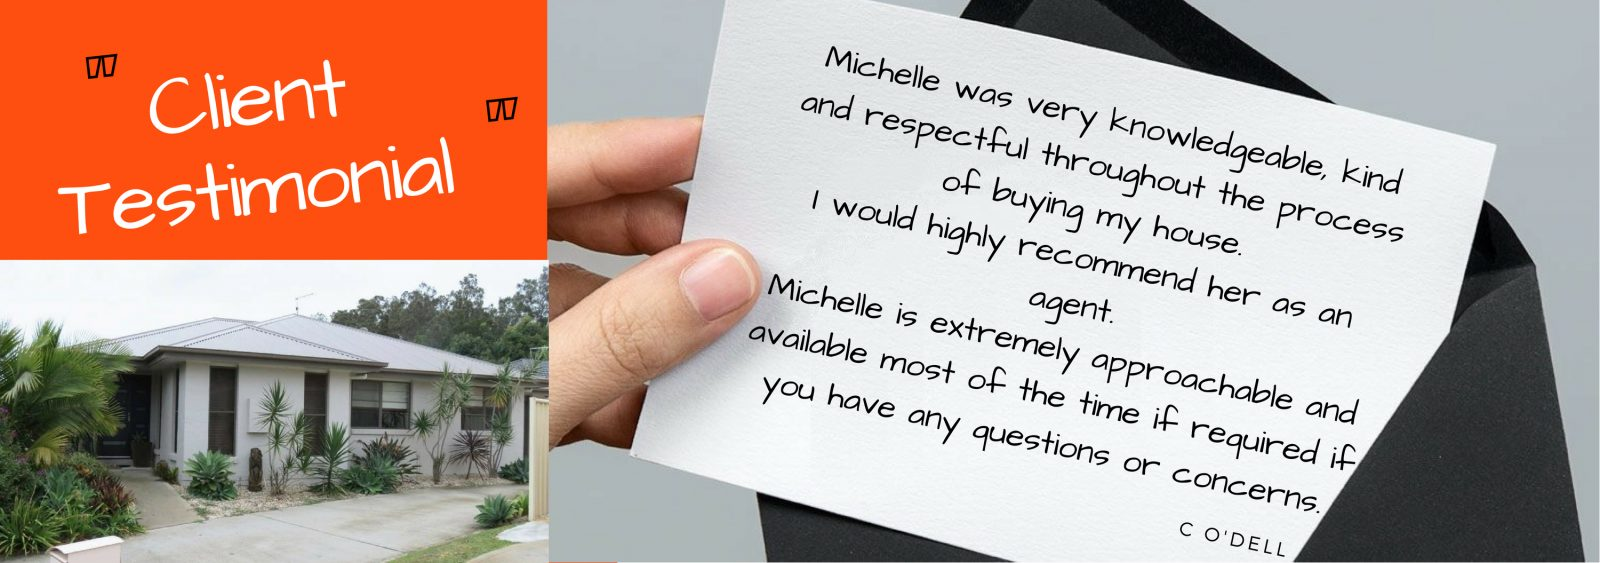 Testimonial - Michelle was very knowledgeable, kind and respectful throughout the process of buying my house.  I would highly recommend her as an agent.  Michelle is extremely approachable and available most of the time if required if you have any questions or concerns. C O'Dell